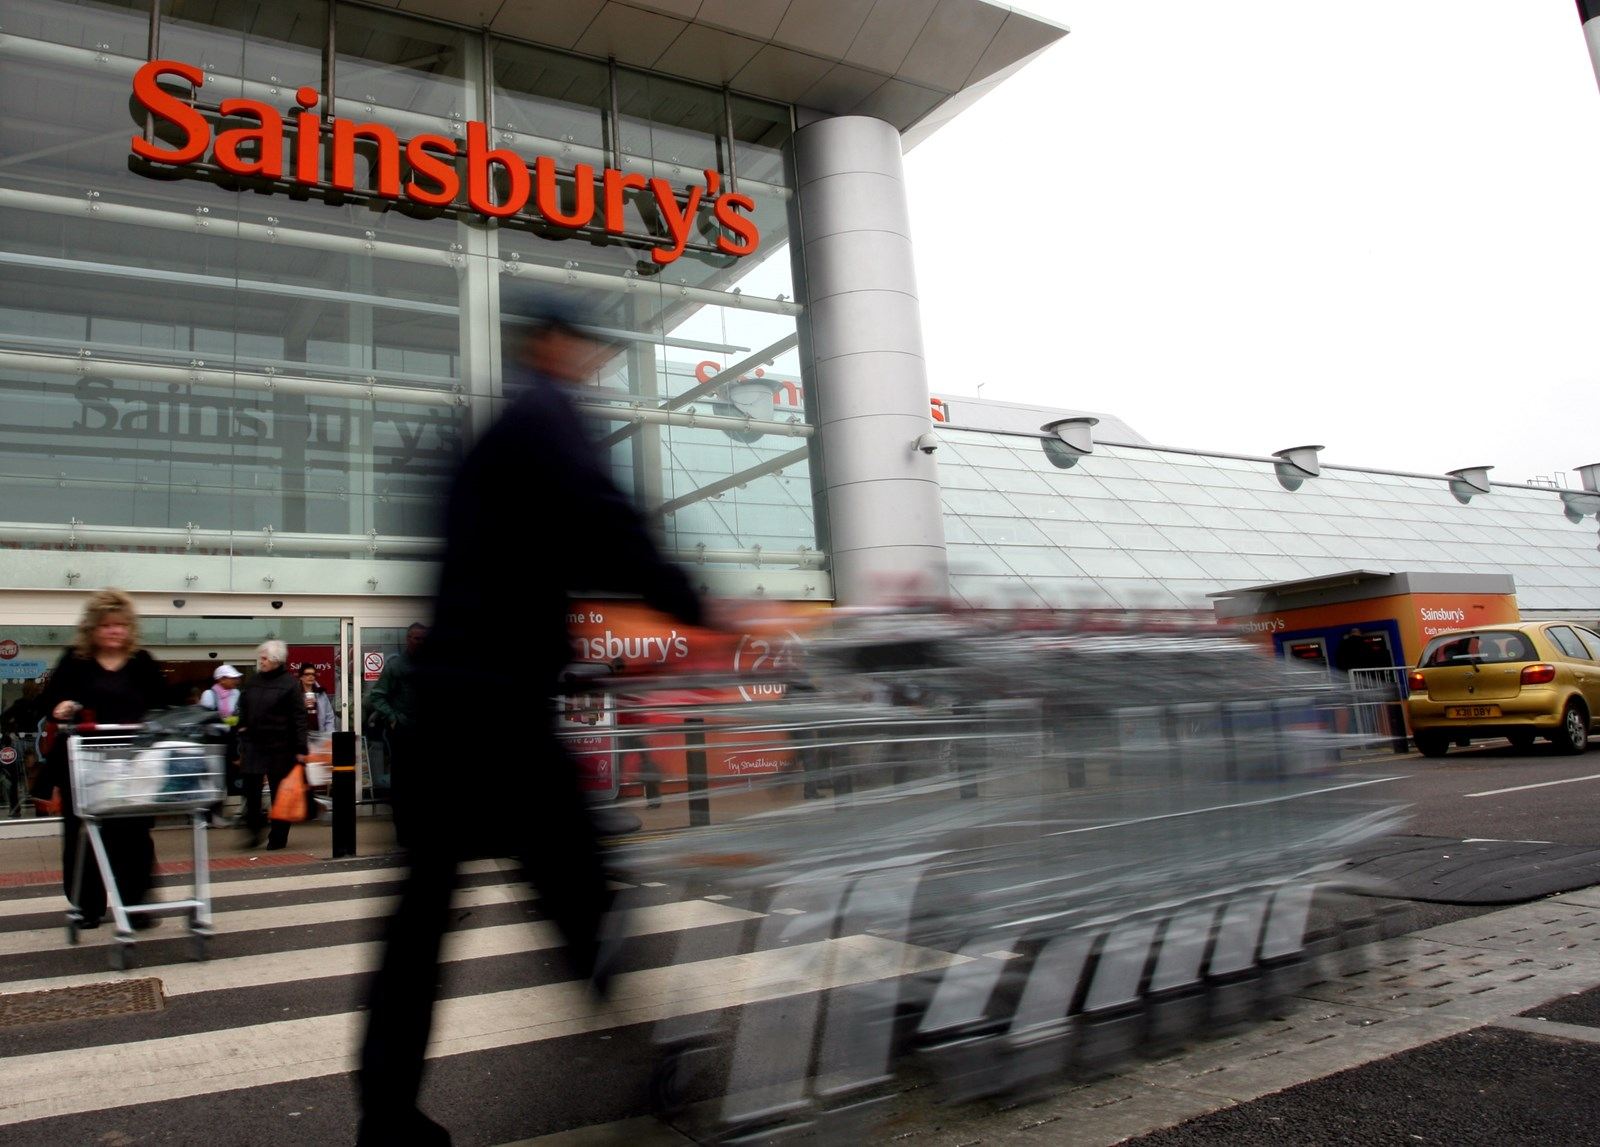 Sainsbury's Declared UK's Most Socially Influential Retail Brand